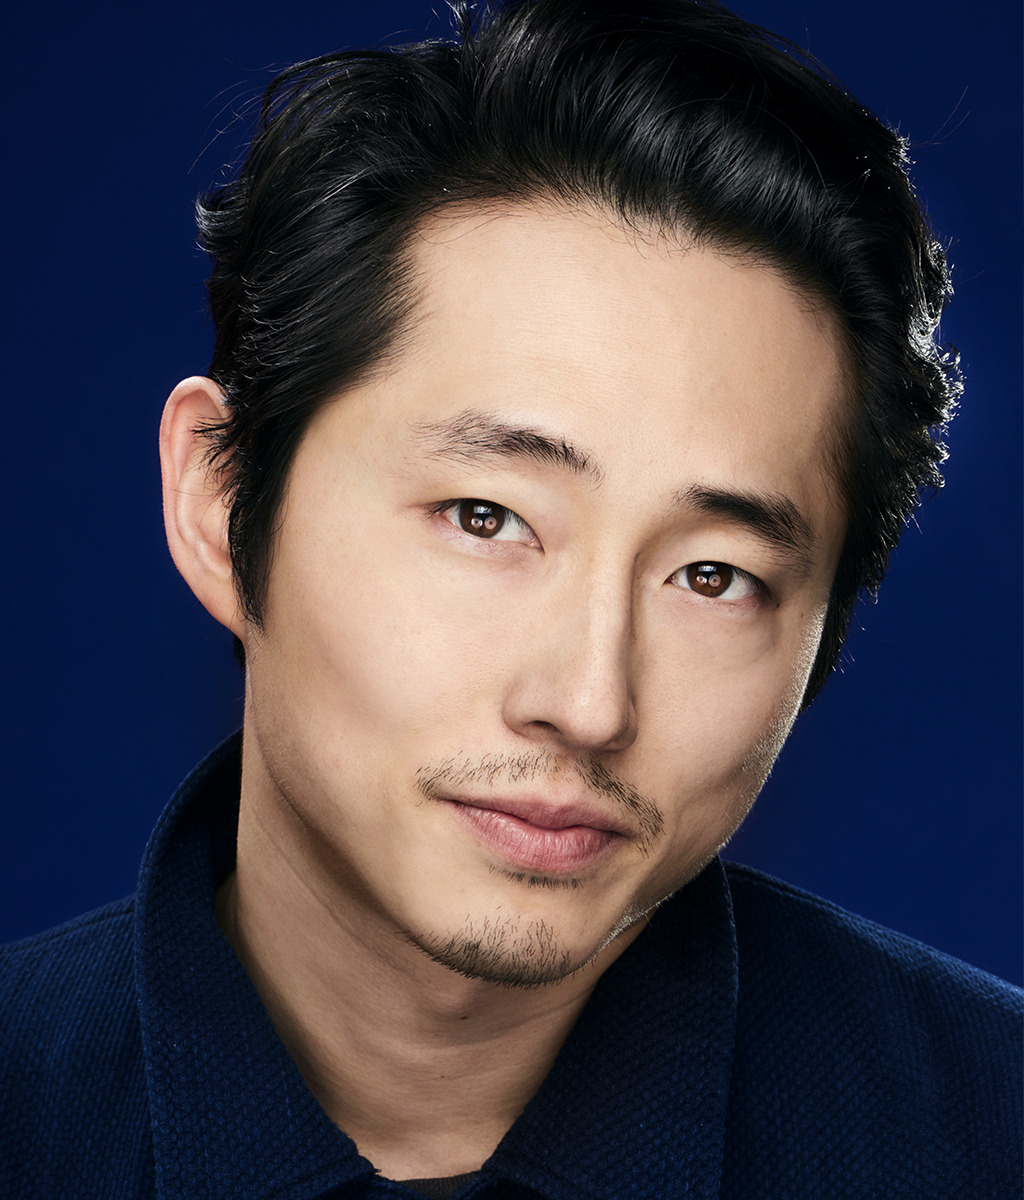 Steven Yeun - Steven has starred in a variety of projects such as The Walking Dead, Okja and Burning. He has never been in Fresh Off The Boat. You're thinking of Randall Park, who is also of Korean descent and is not Steven Yeun.